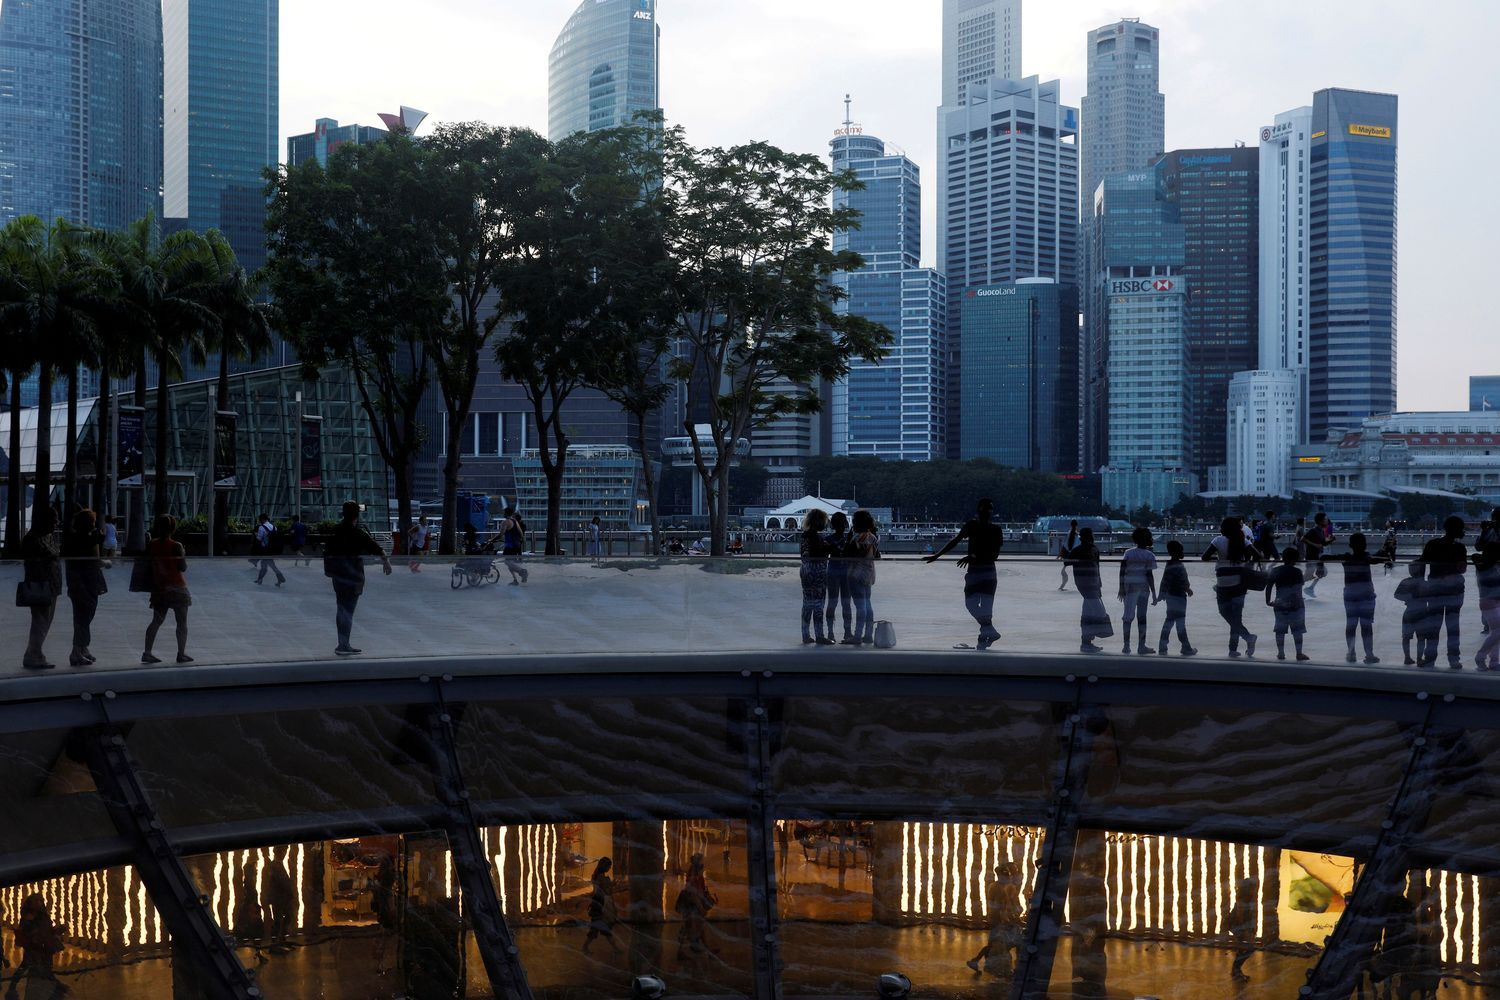 Singapore economy grew just 0.7 percent in 2019: government